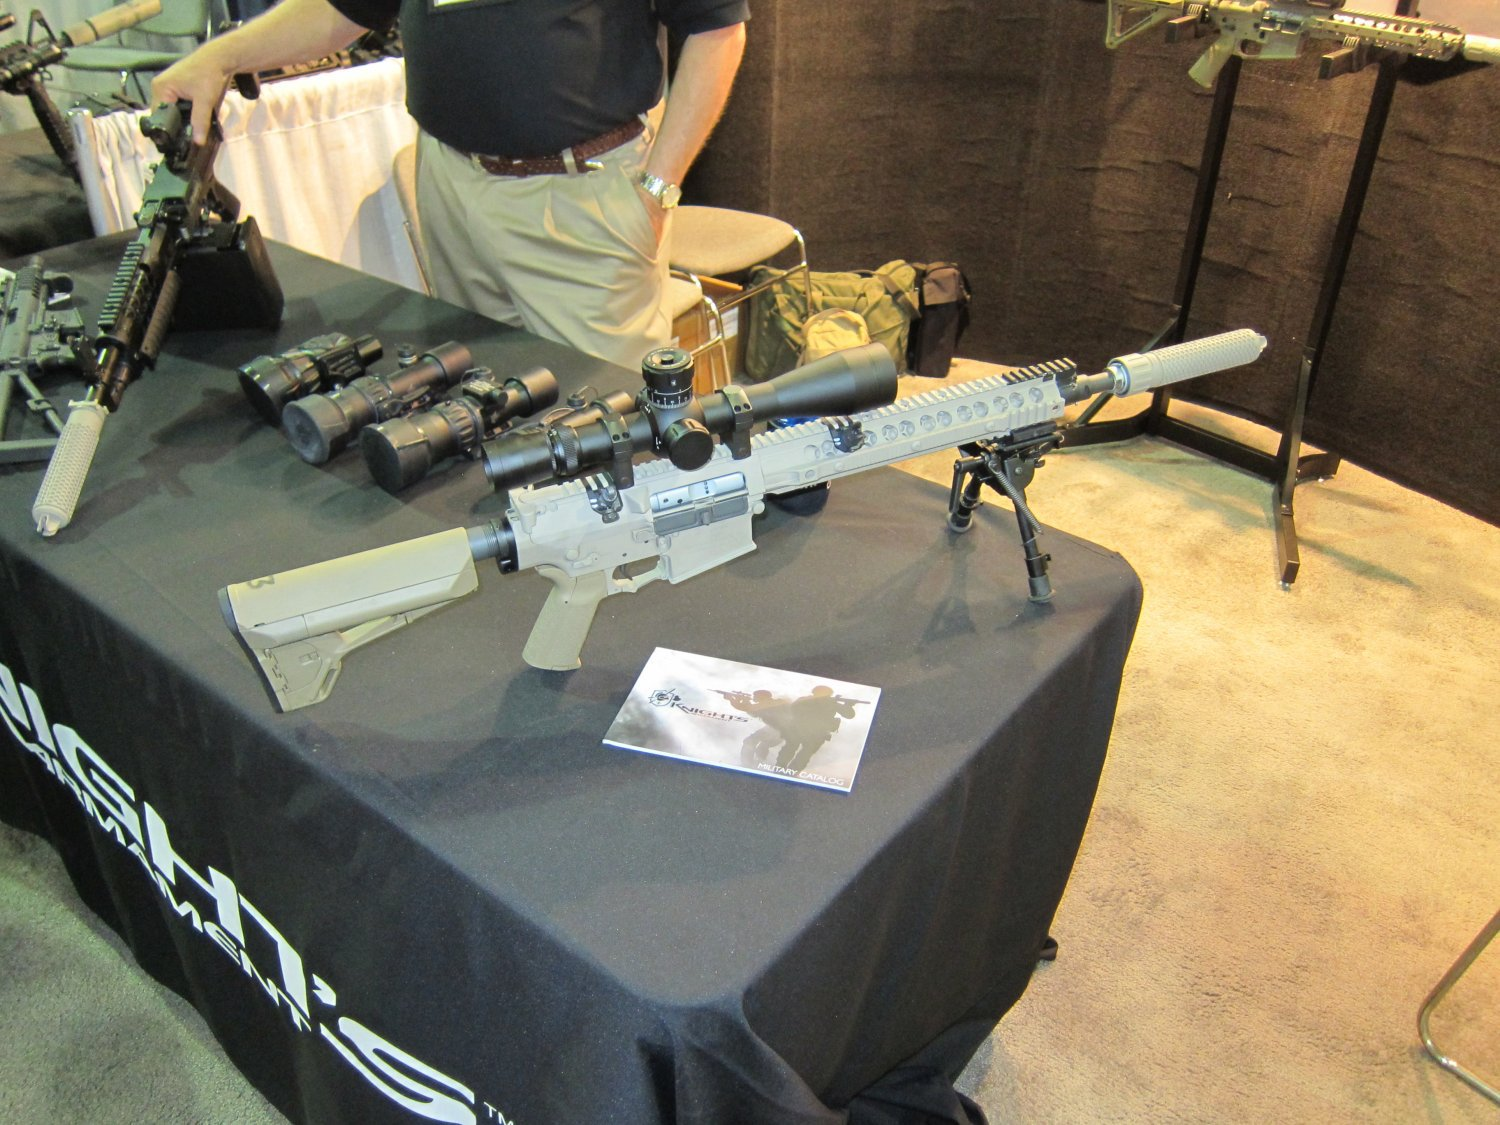 KAC M110 SASS Carbine Compact SR 25 EM Carbine SOFIC 2011 DefenseReview.com DR 2 Knights Armament Co. KAC M110 SASS/SR 25 EM Carbine/Compact 16 7.62mm NATO Battle Carbine with KAC 762 MAMS Muzzle Brake and KAC QDC and CQB Muzzle Cans (Silencers/Sound Suppressors): Range Session (Photos and Video!)